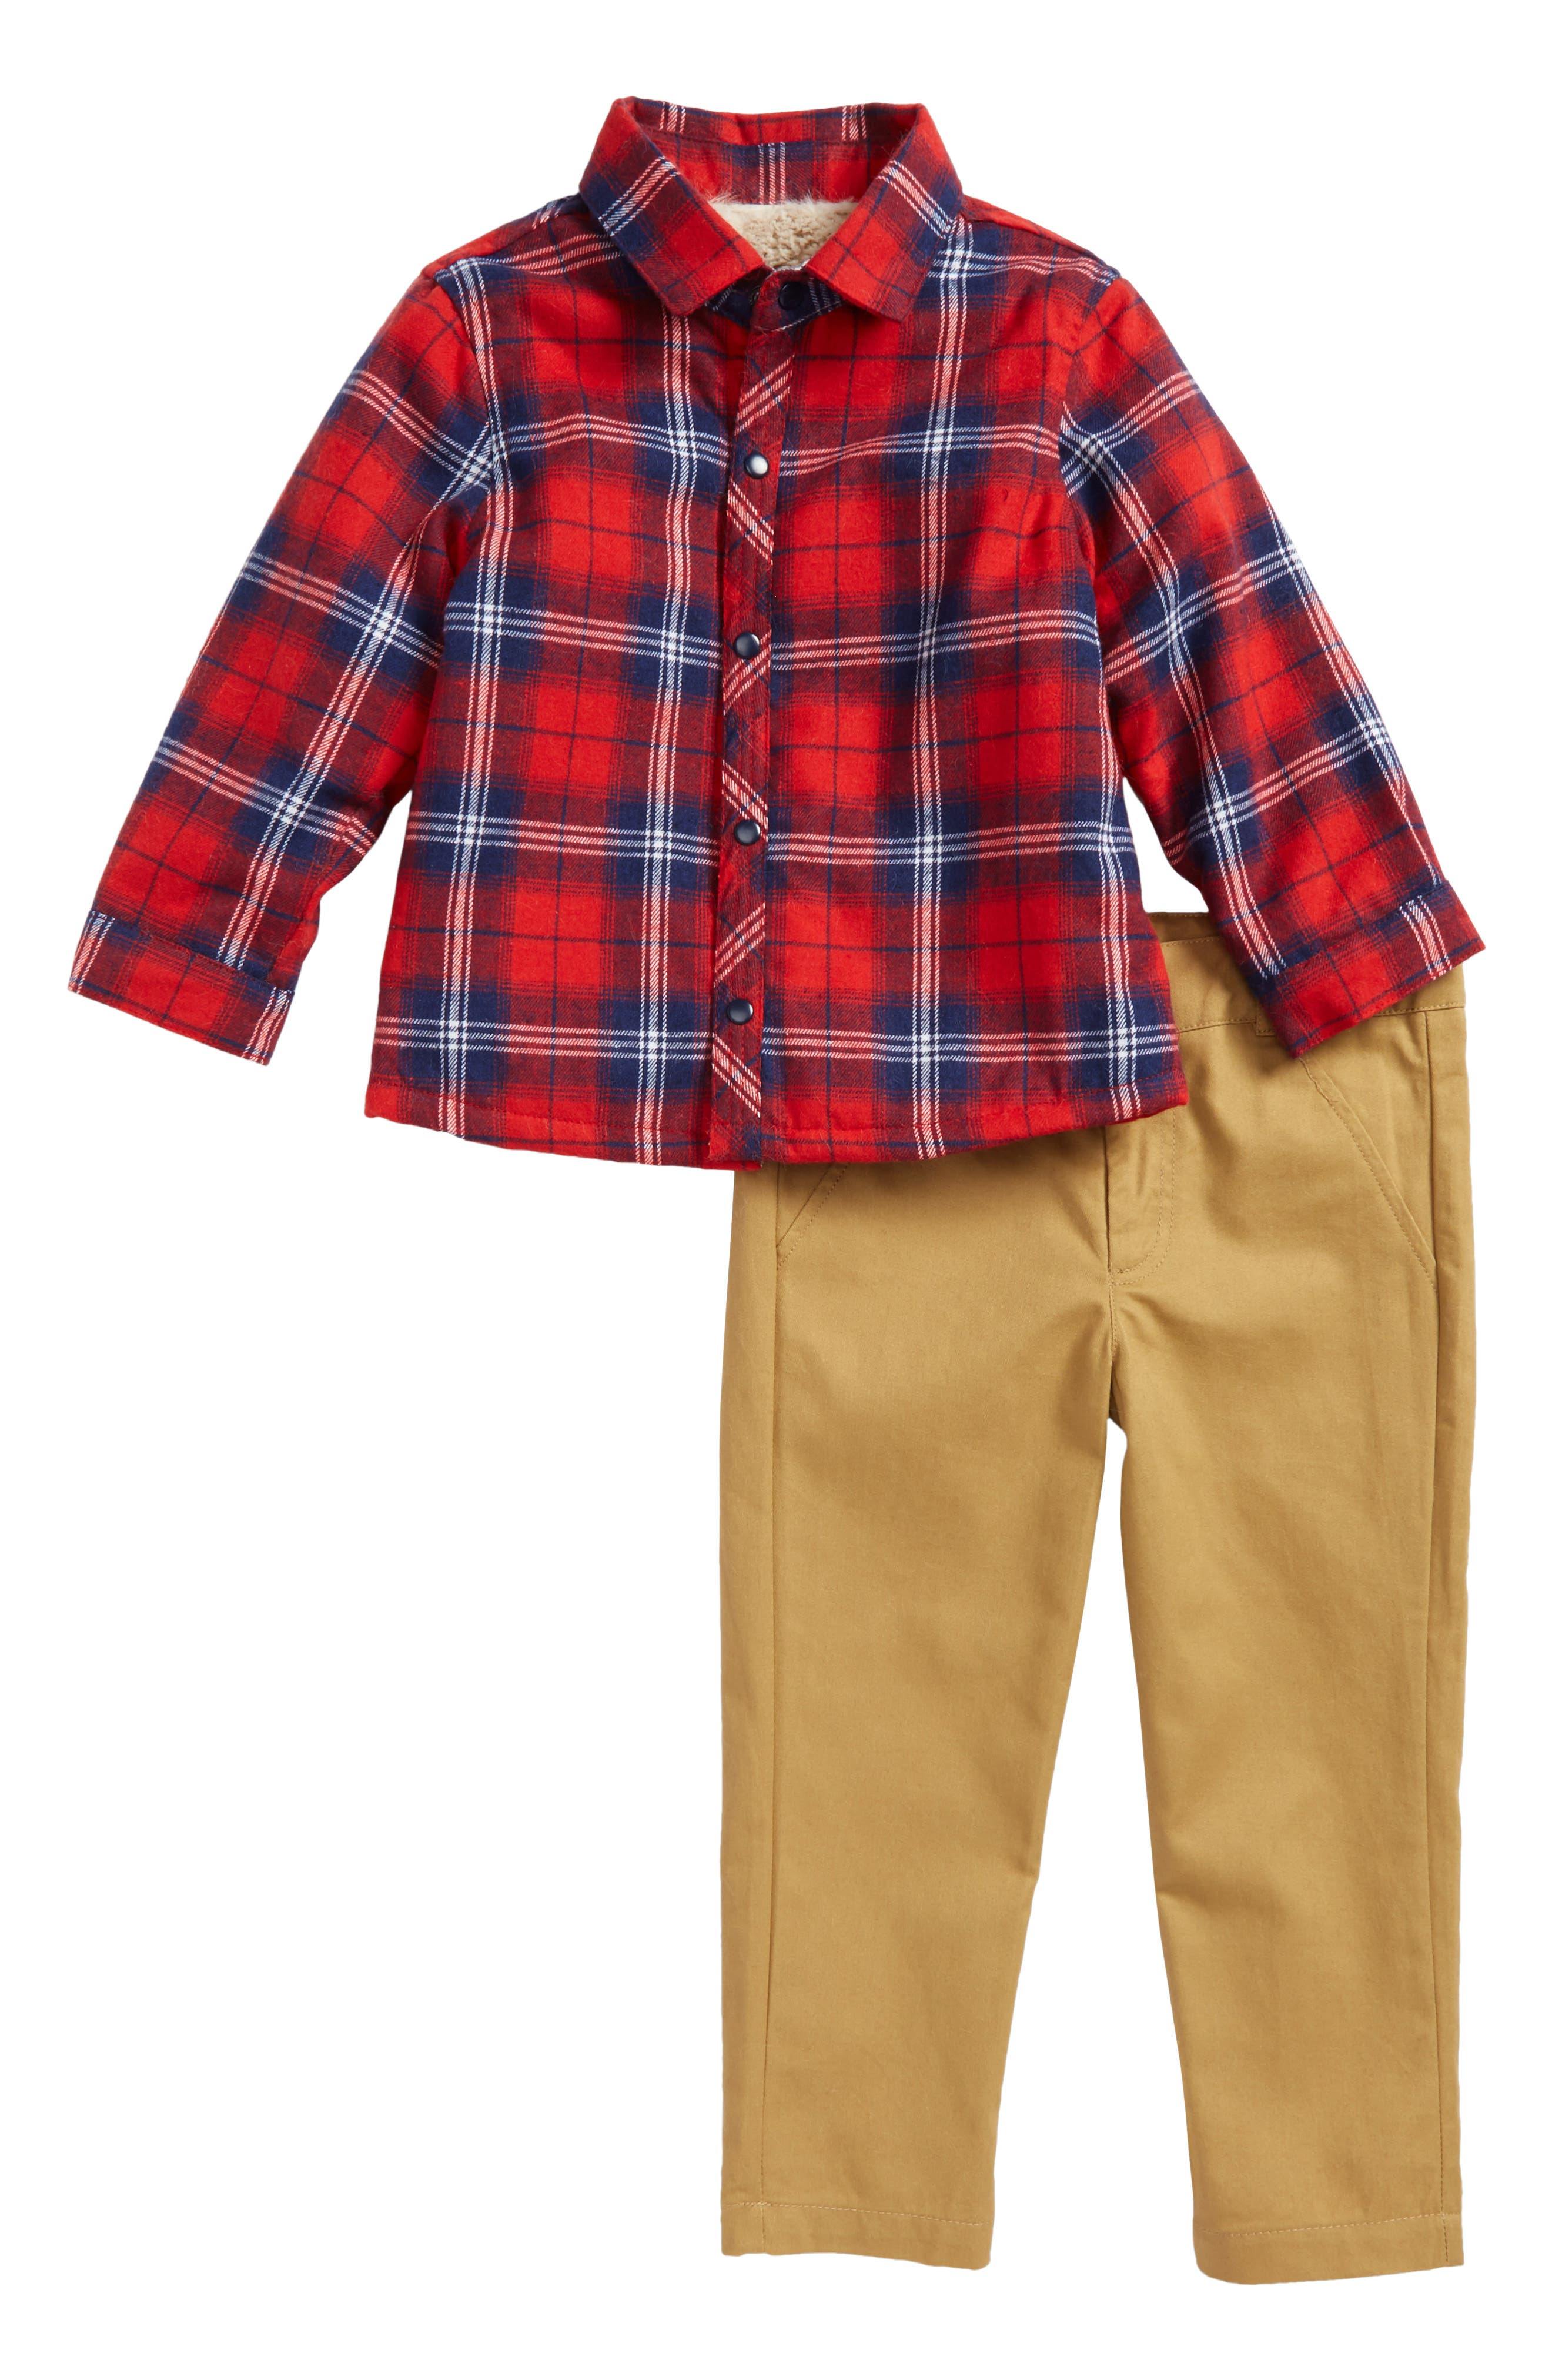 Little Brother by Pippa & Julie Plaid Faux Fur Lined Shirt & Pants Set (Baby Boys)